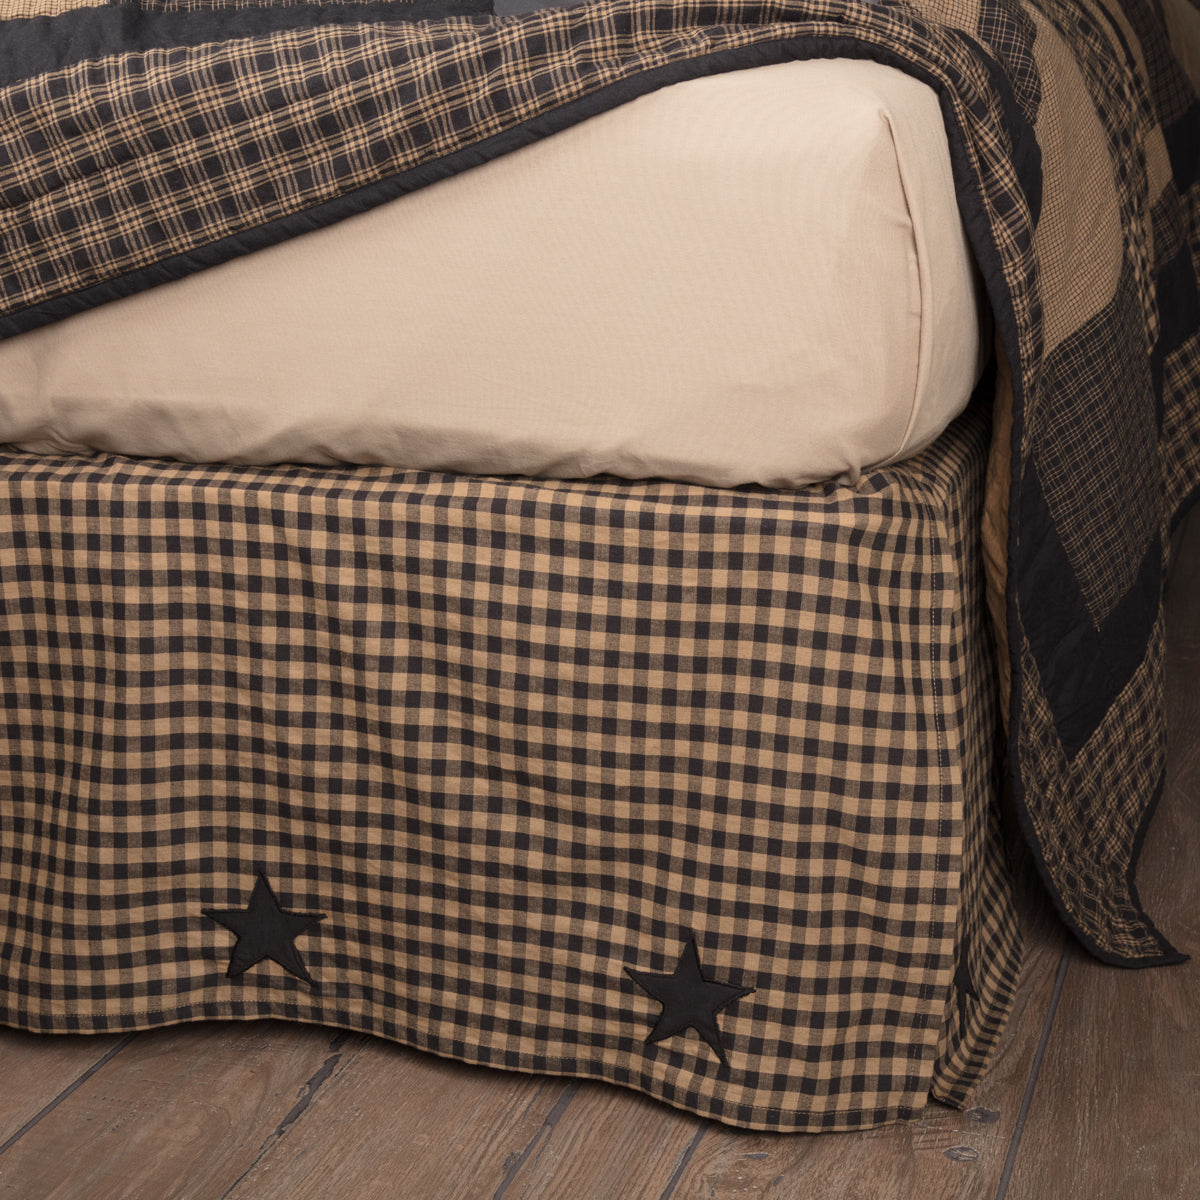 Black Check Star King Bed Skirt 78x80x16 - Woodrol